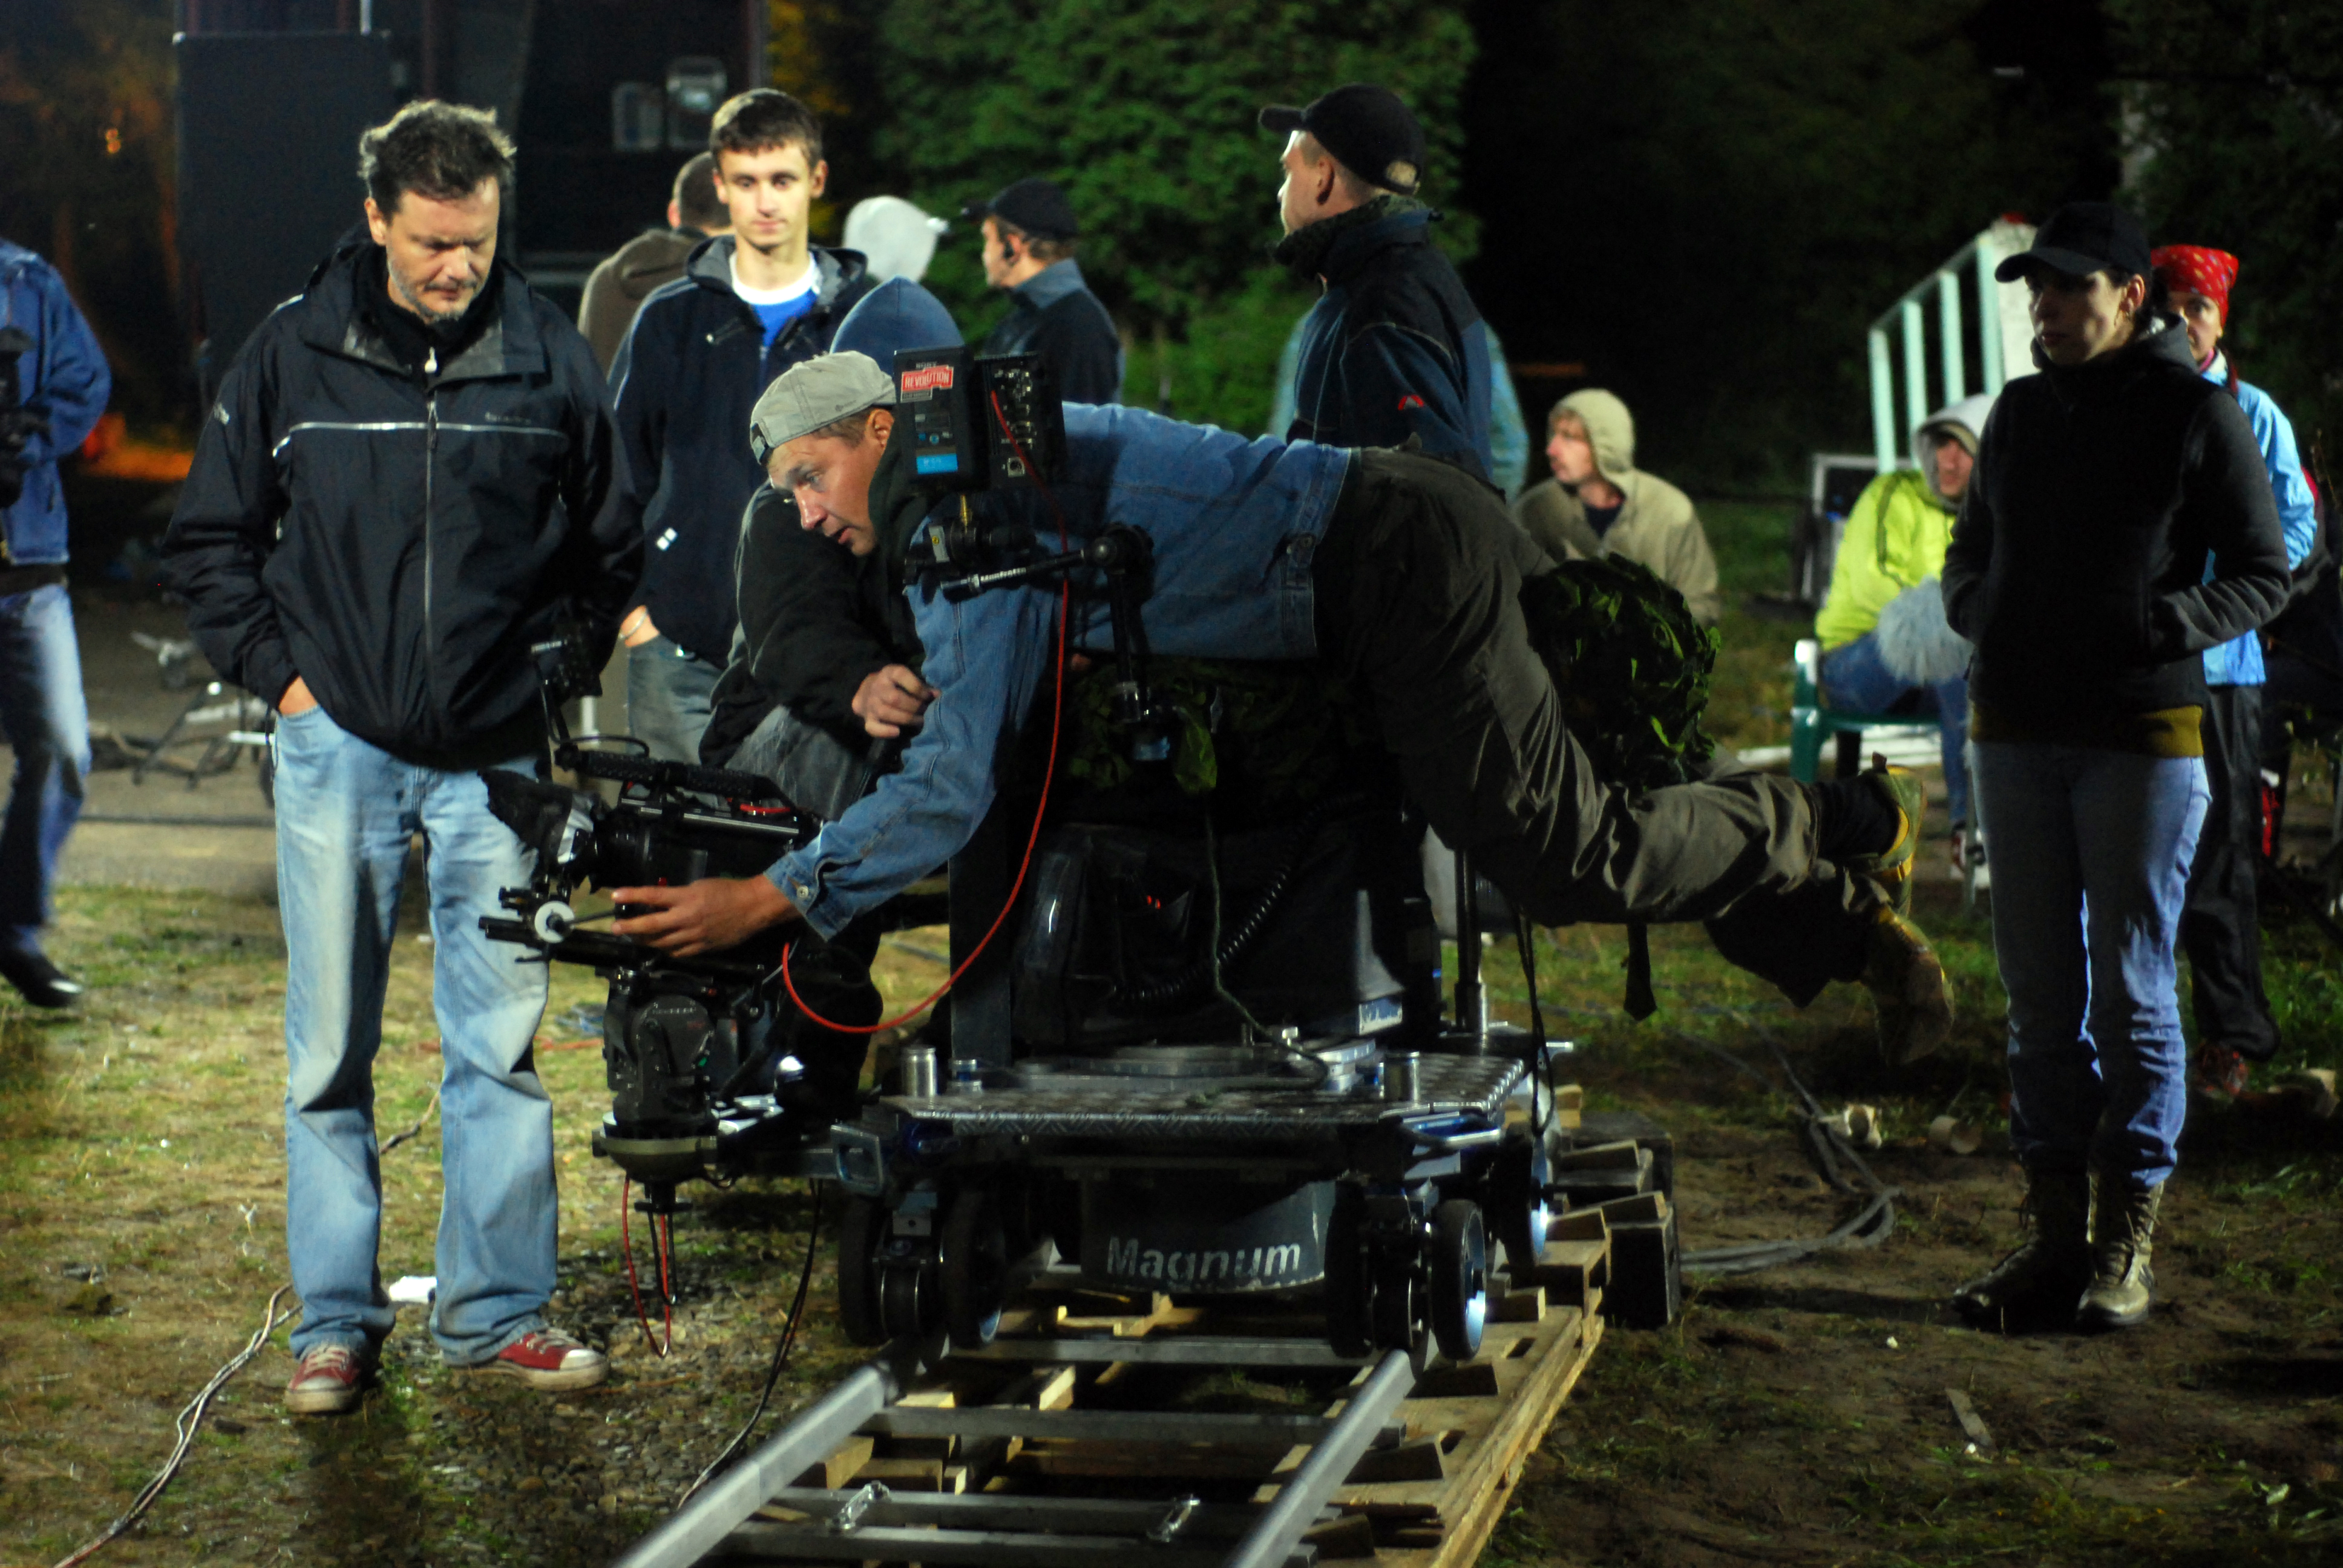 85M Disney Production To Start Filming In Chatham In